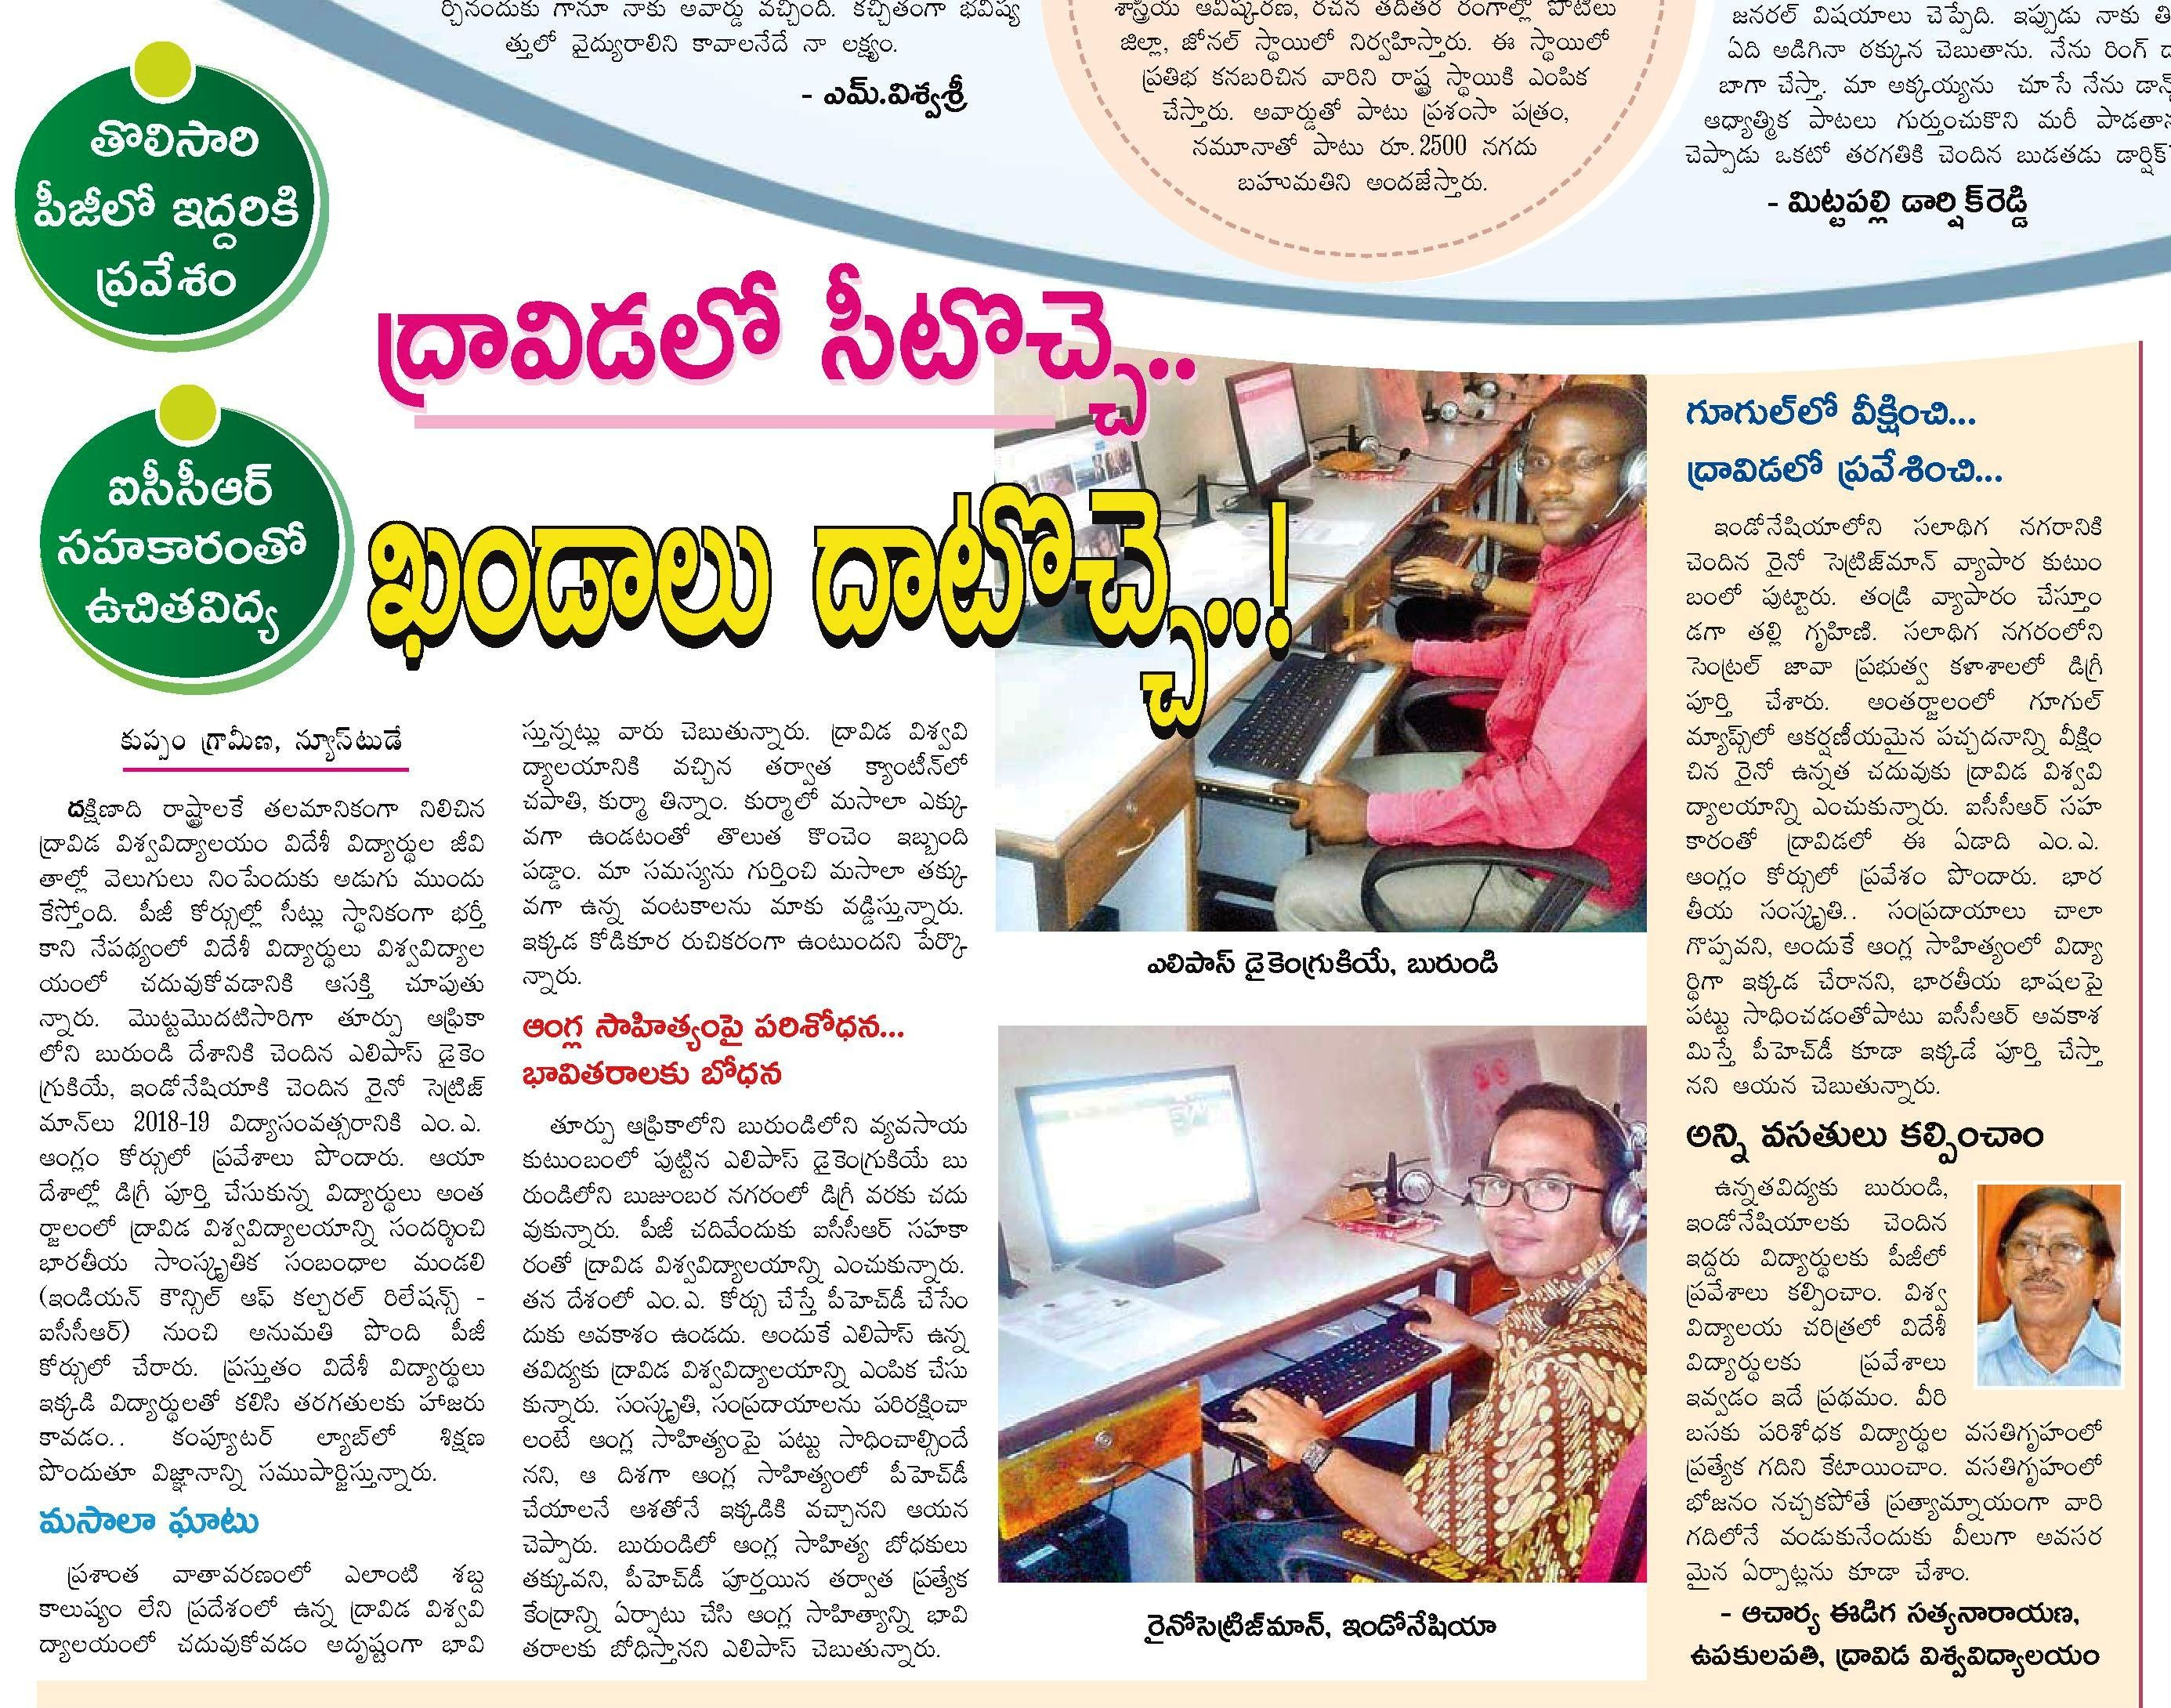 EENADU Paper clipping about Foreign Students Joined in Dravidian University on 28th July 2018